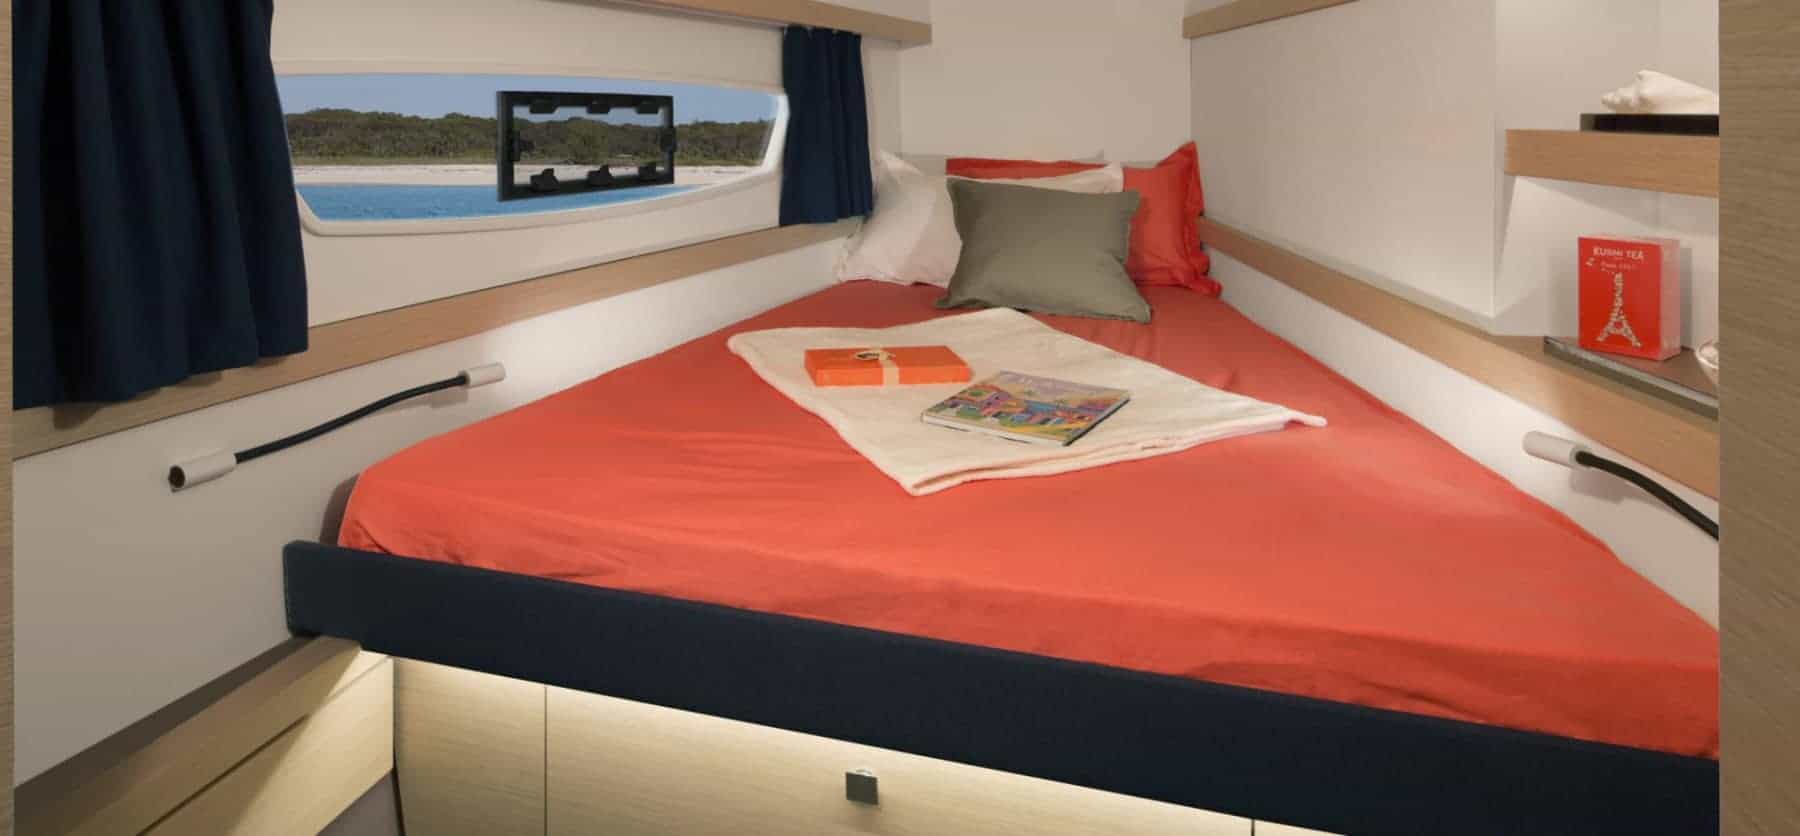 Inside of a cabin in the Fountaine Pajot Lucia 40 with red bed sheets and with walls and a window beside the bed